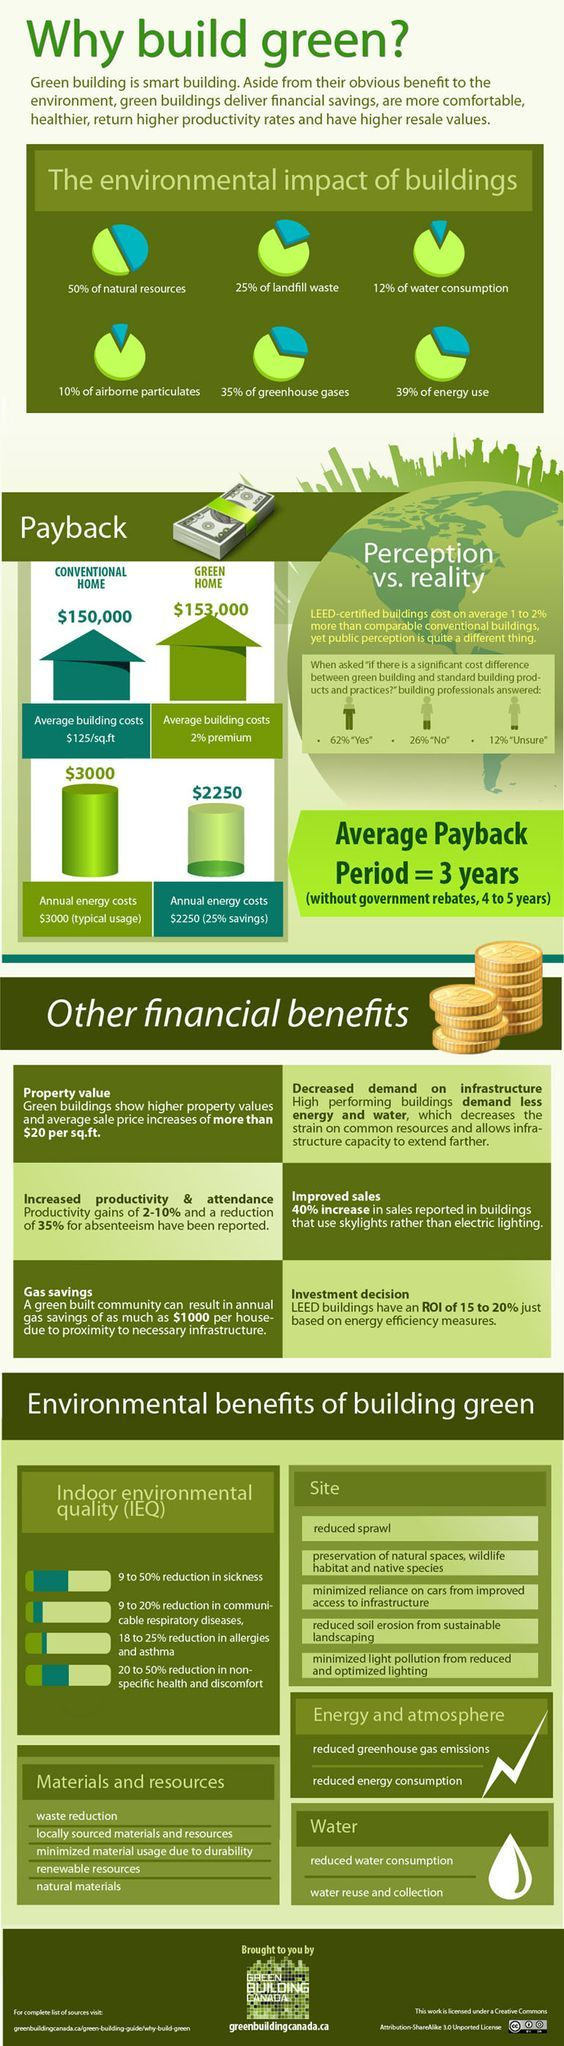 Why Build Green? The Benefits of Eco-Friendly Building [Infographic] |  Elemental